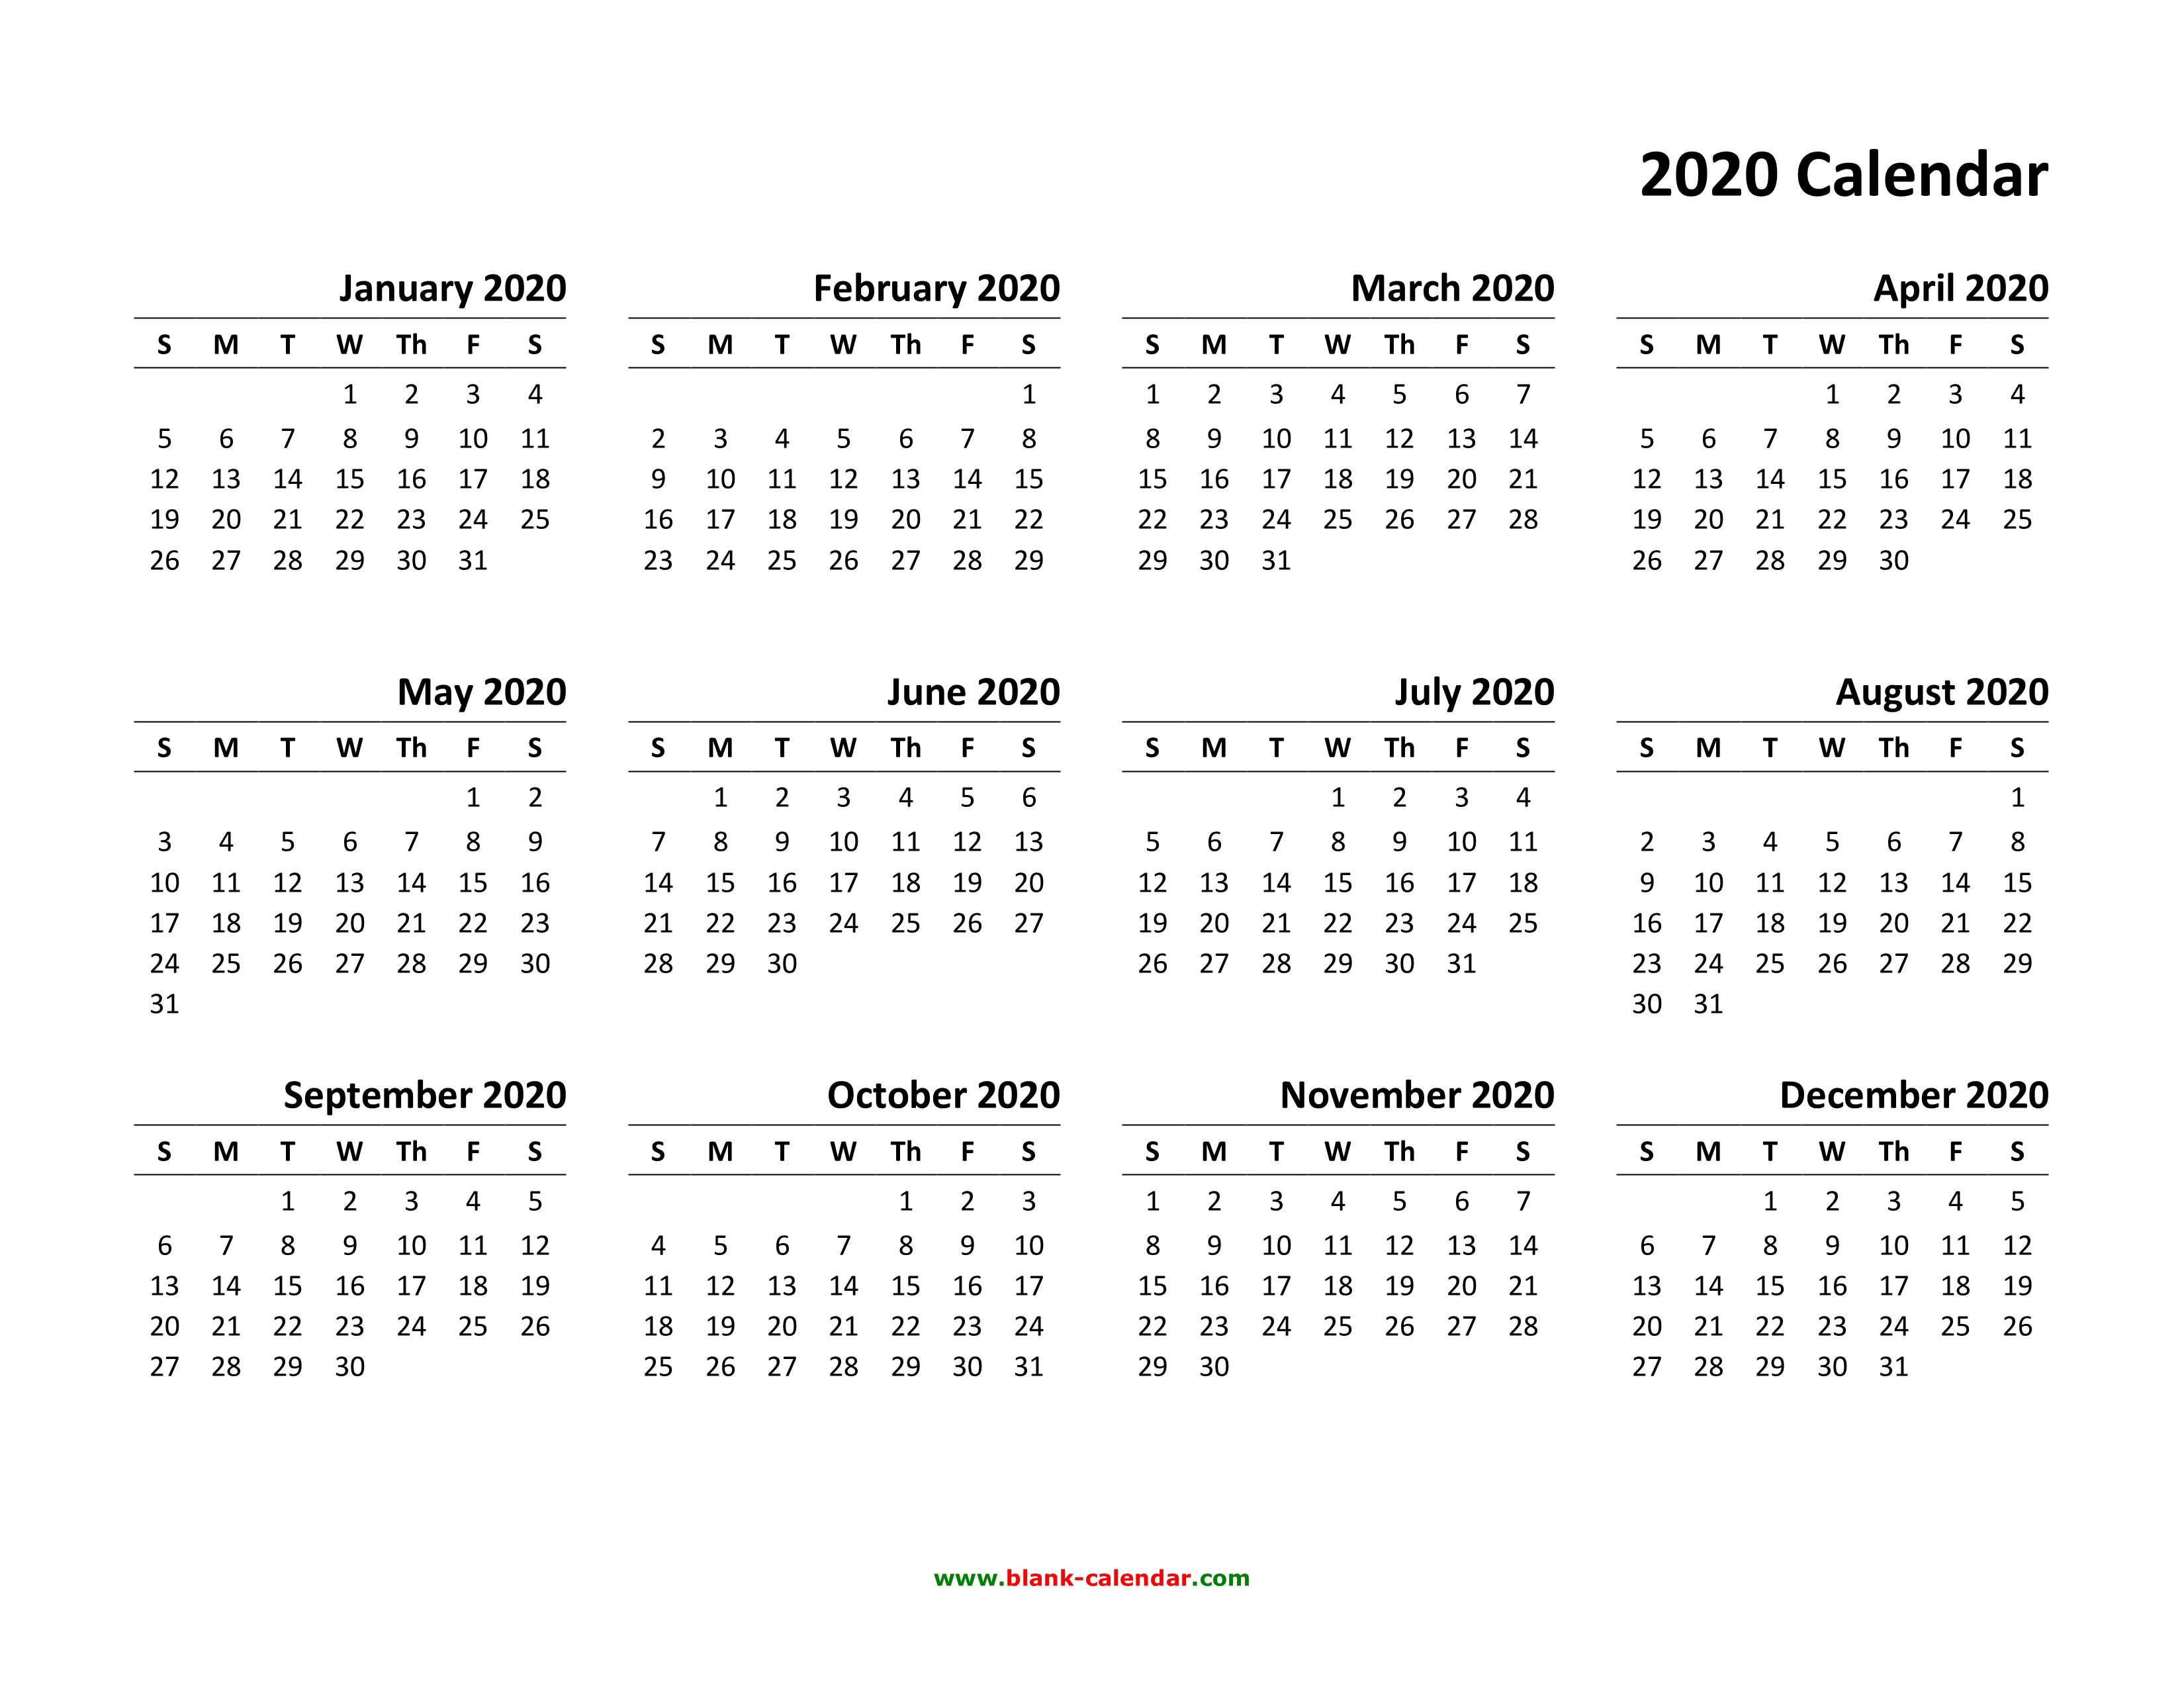 Yearly Calendar 2020 | Free Download And Print with regard to Free Printable Weekly Calendar 2020